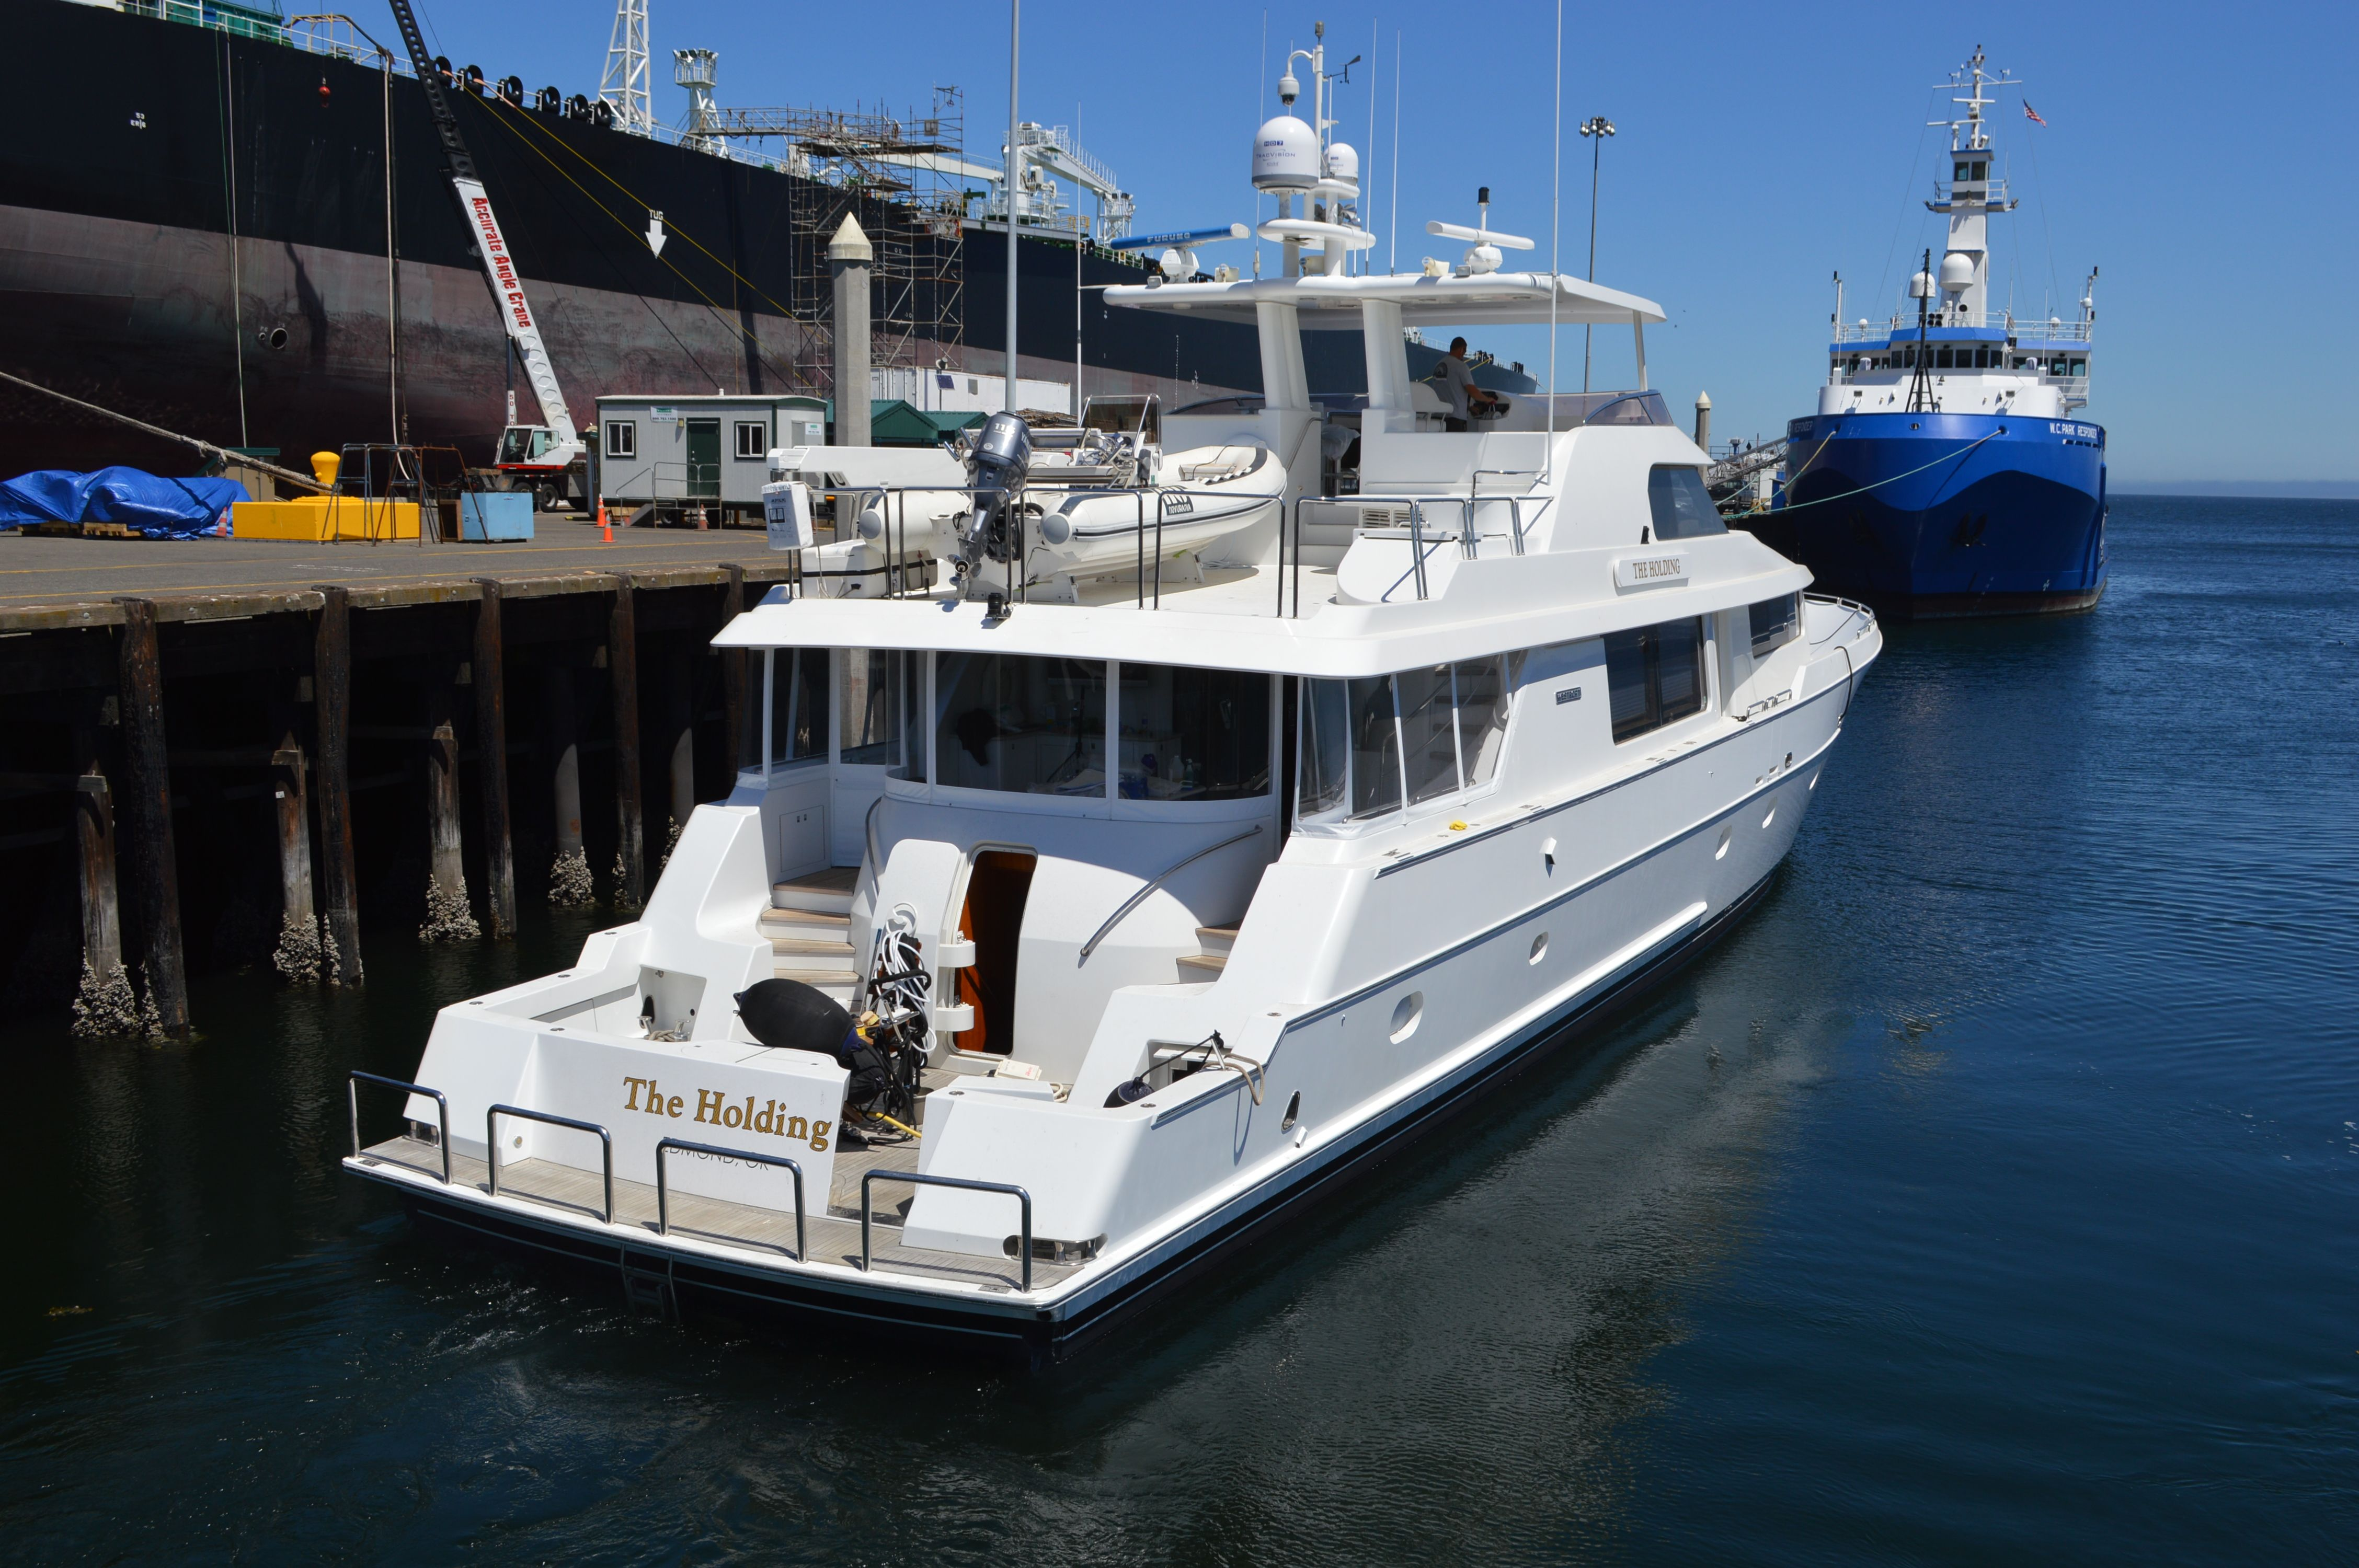 The Holding, a 106' Westport Yacht, based out of Seattle